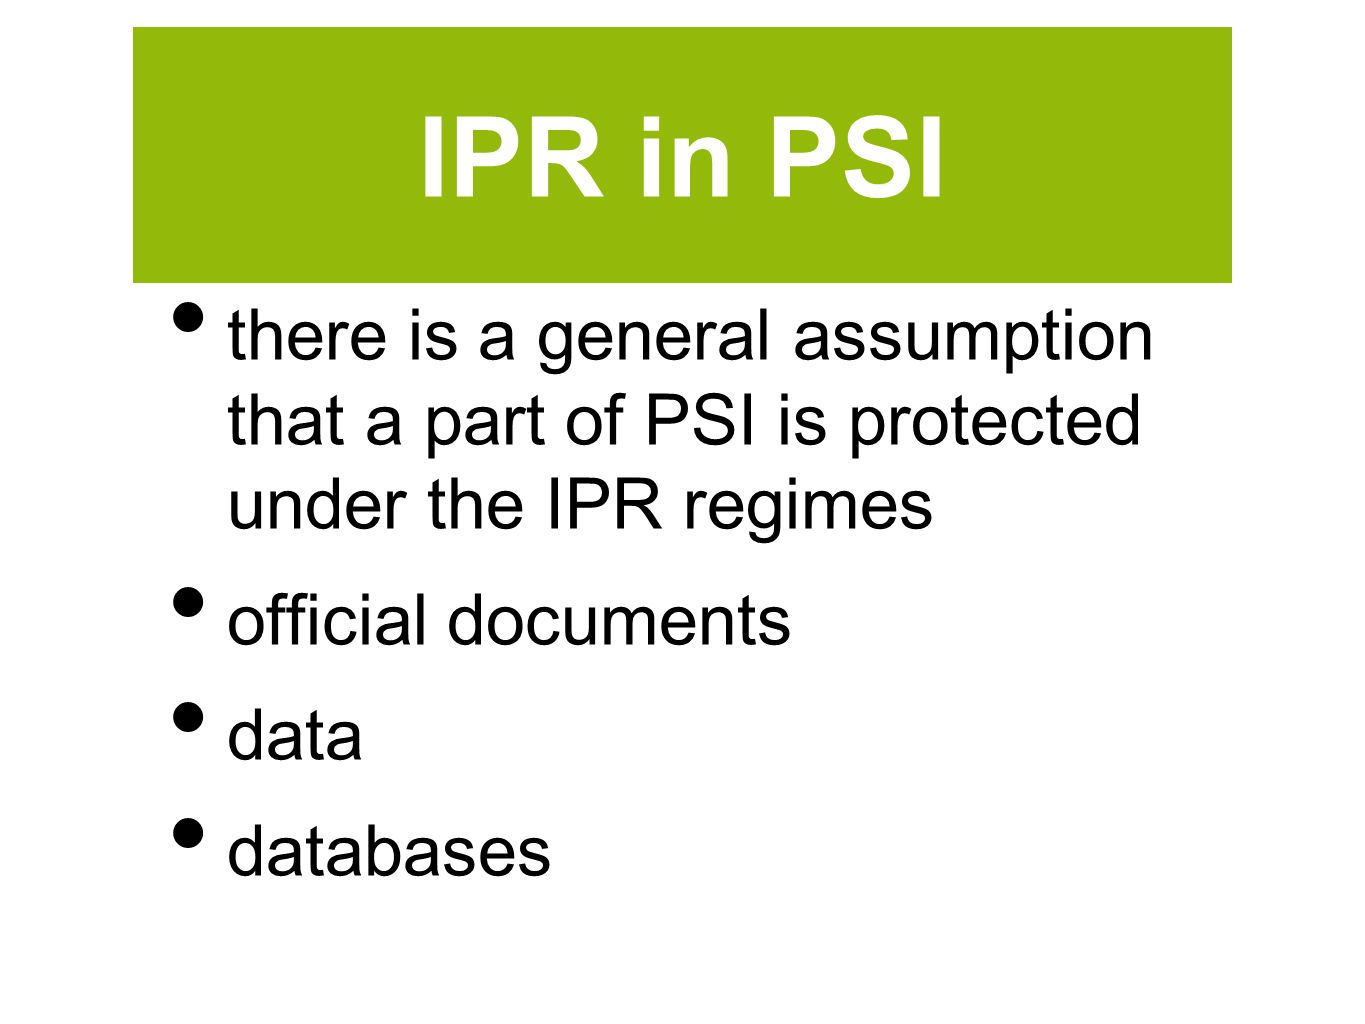 IPR in PSI there is a general assumption that a part of PSI is protected under the IPR regimes official documents data databases